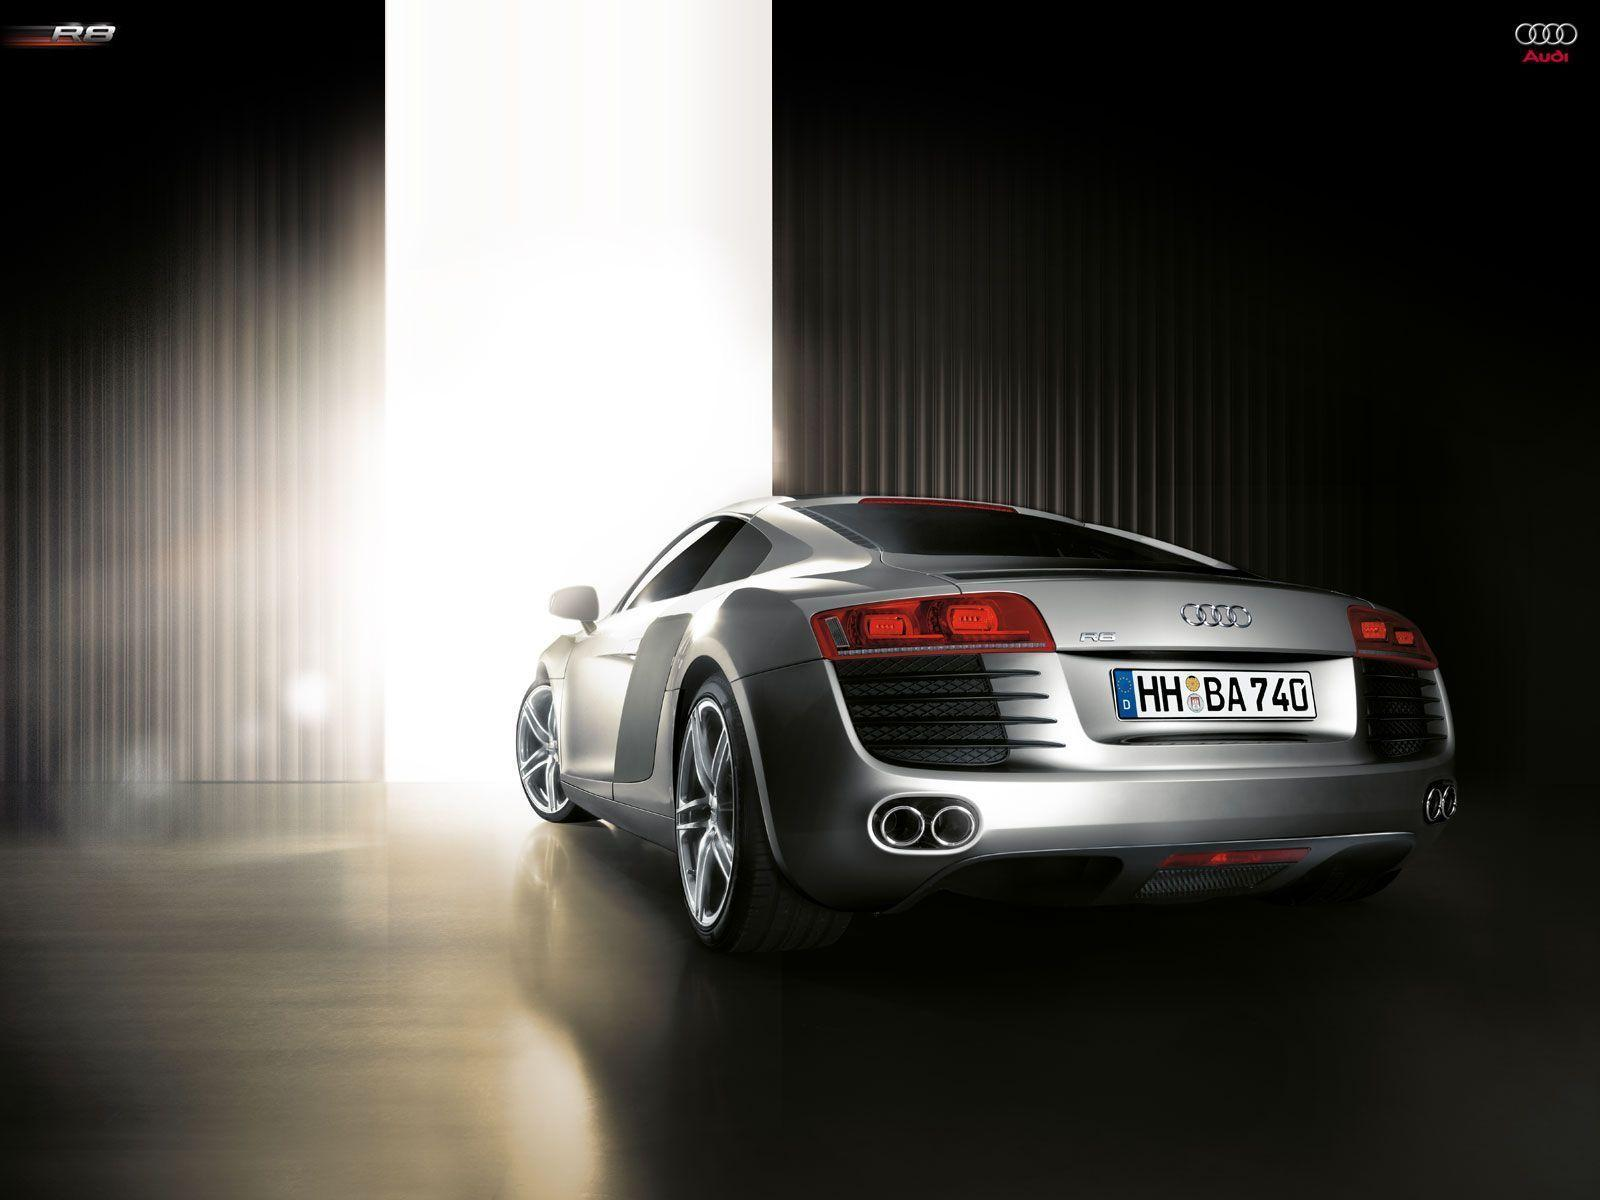 TOP HD WALLPAPERS: AUDI R8 HD WALLPAPERS